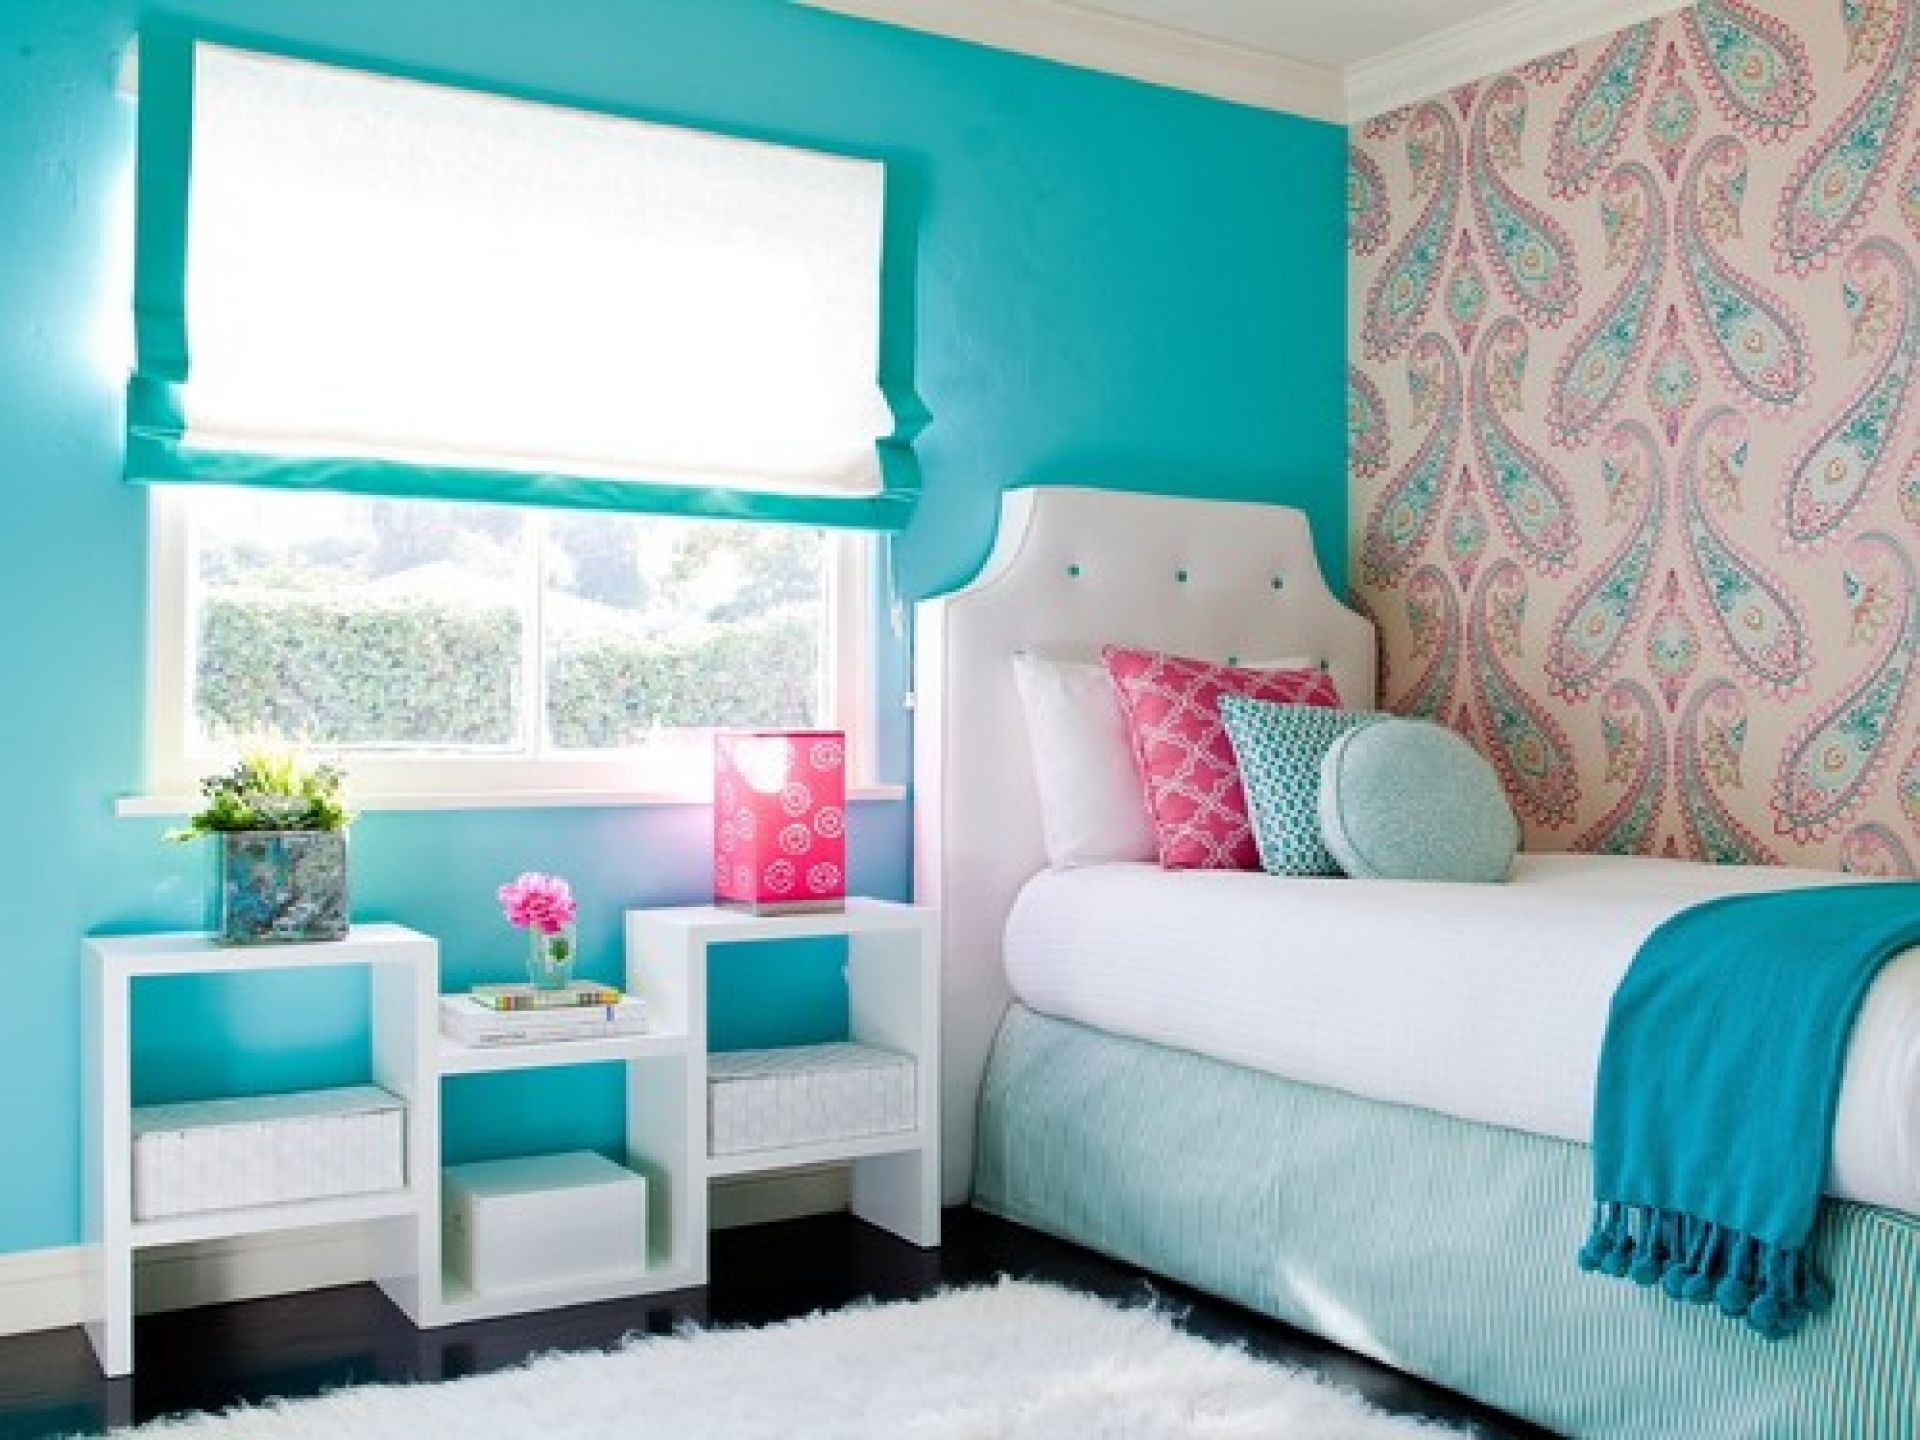 Simple design comfy room colors teenage girl bedroom wall for Girl bedrooms ideas